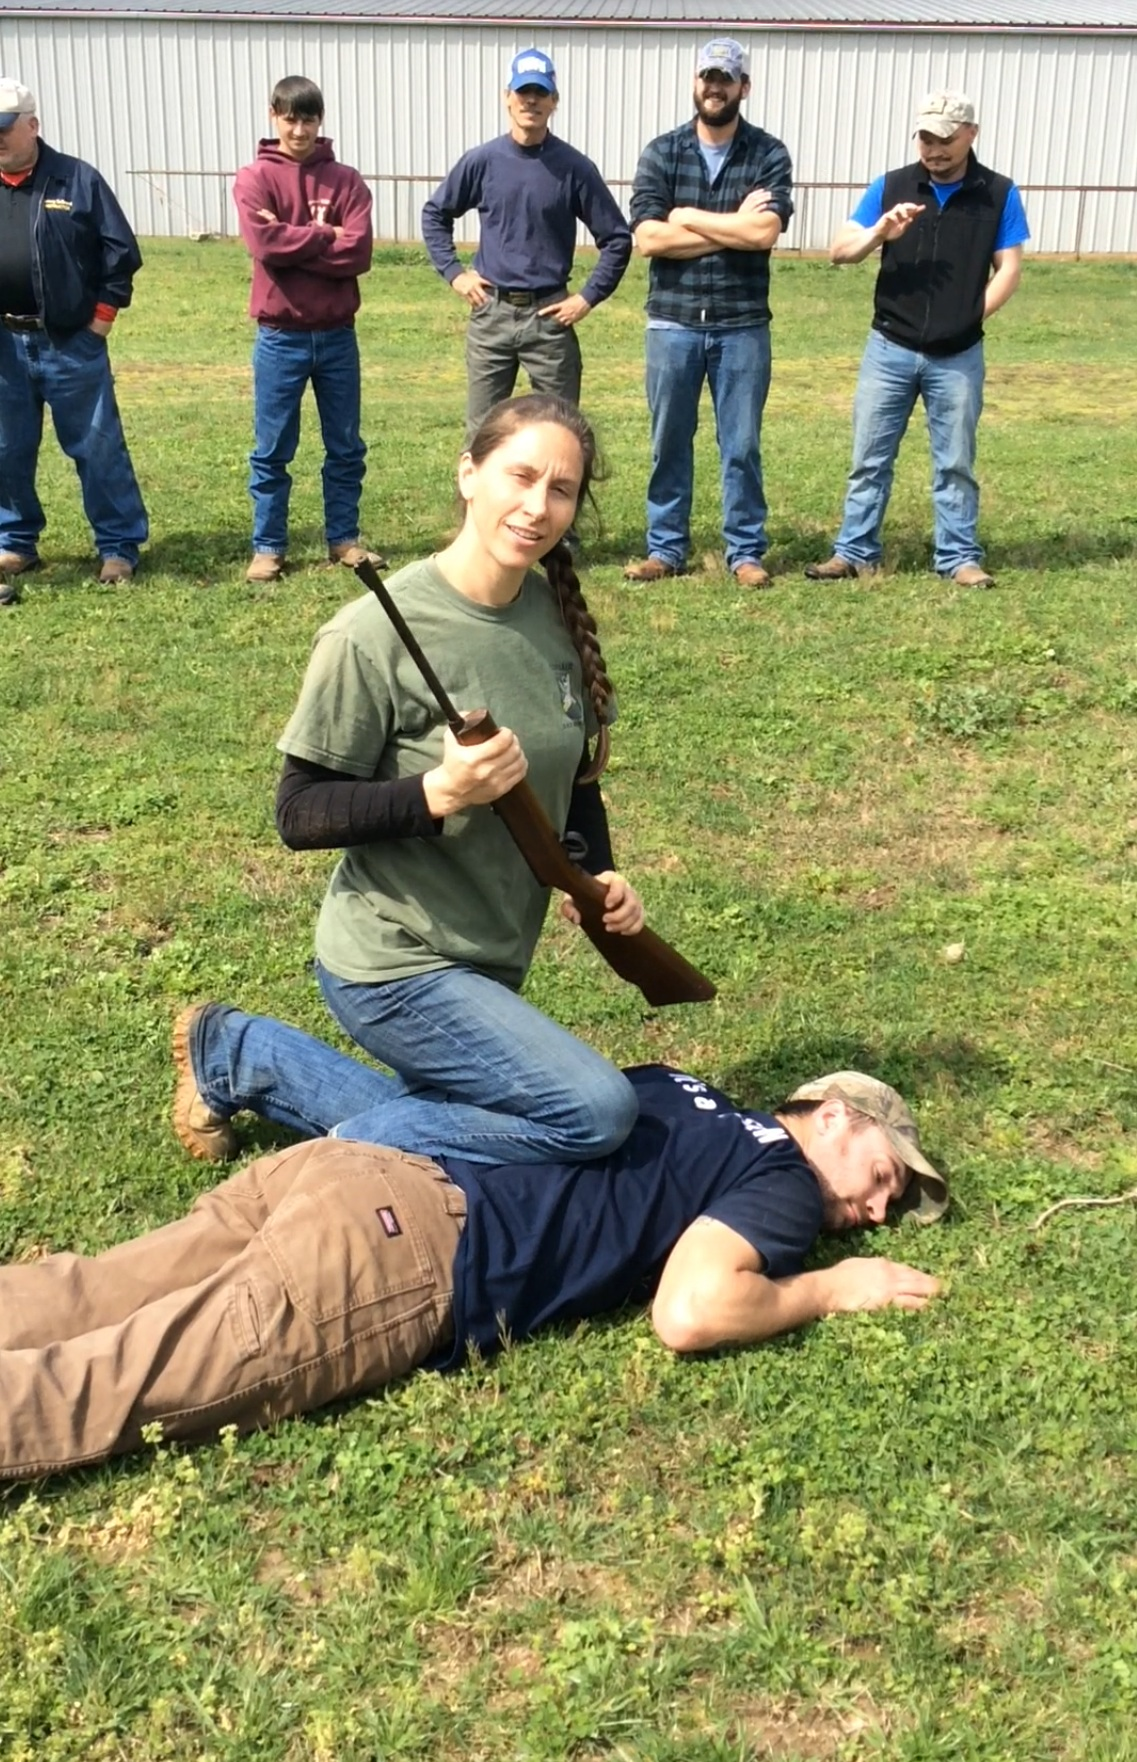 Self+Defense+demo+with+CWO+Larissa+Zwolak%2C+U.S.+Army+correct.jpg